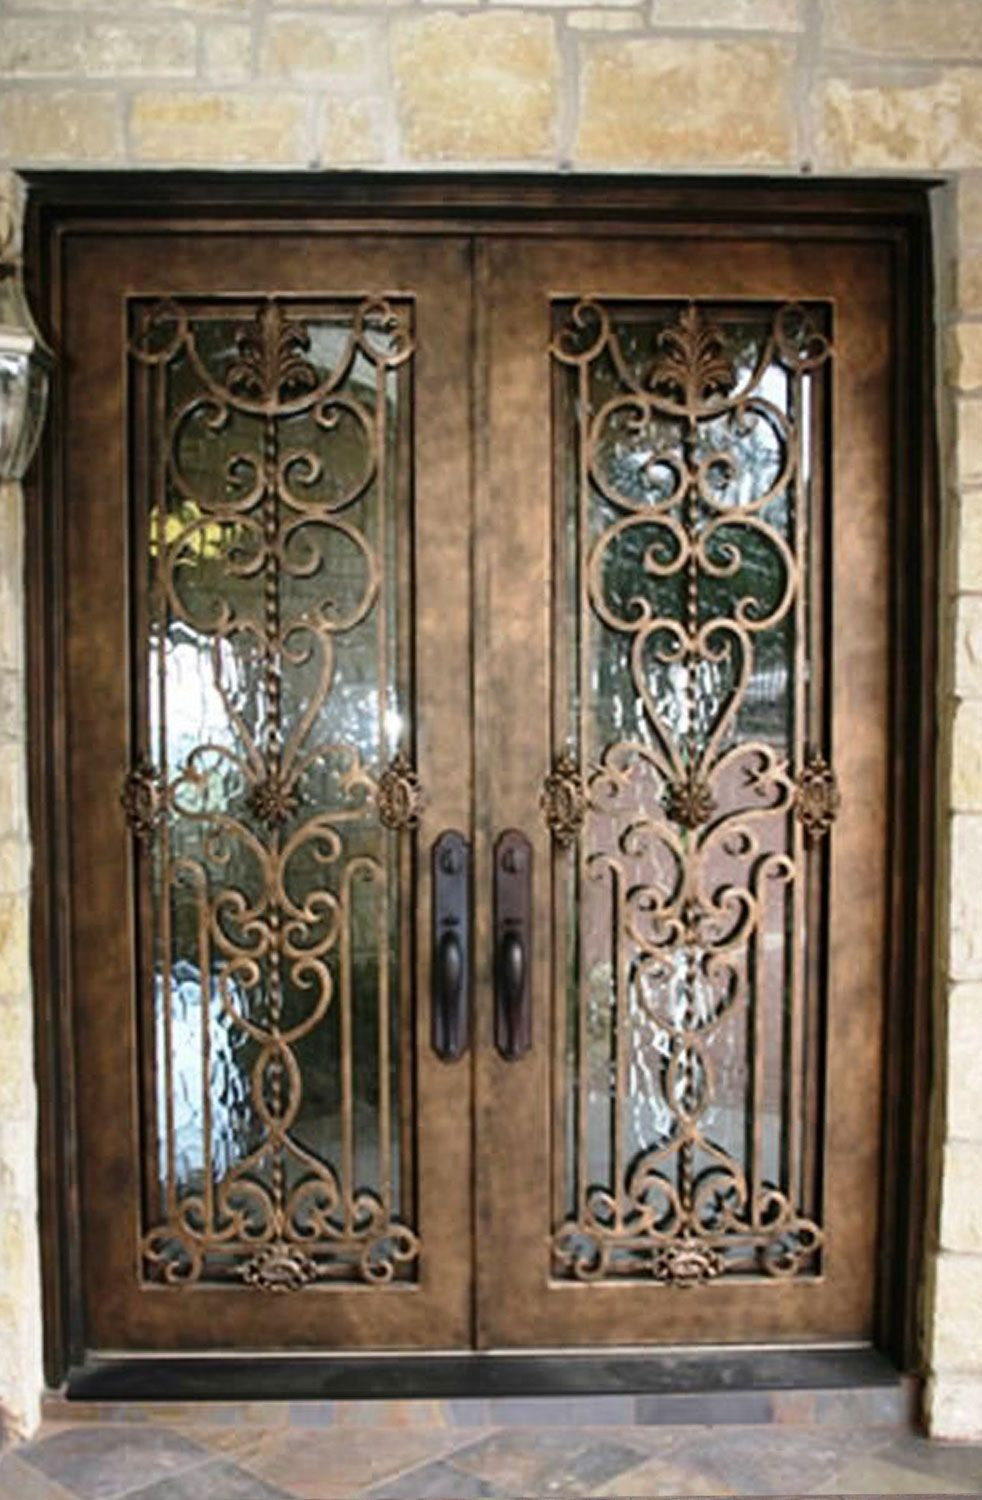 Cantera Doors Provides Hand Forged Custom Made Iron Staircase Balcony Railings For Your Home In Texas Wrought Iron Doors Iron Doors Wrought Iron Front Door